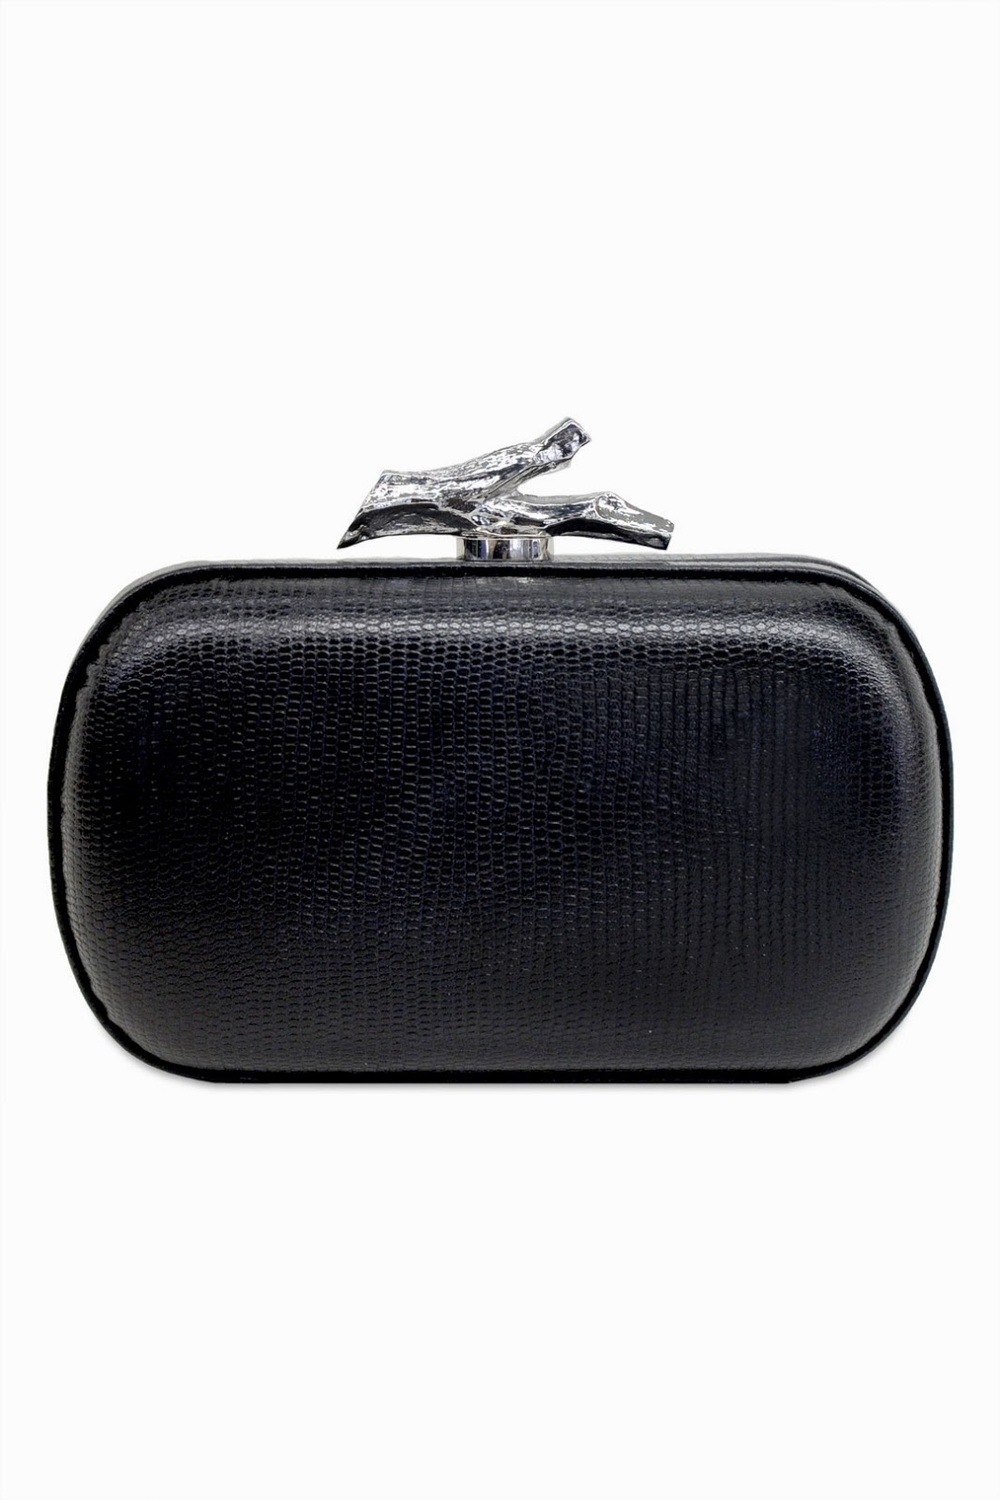 handbag_diane_von_furstenberg_black_lytton_embossed_lizard_clutch_0.jpg